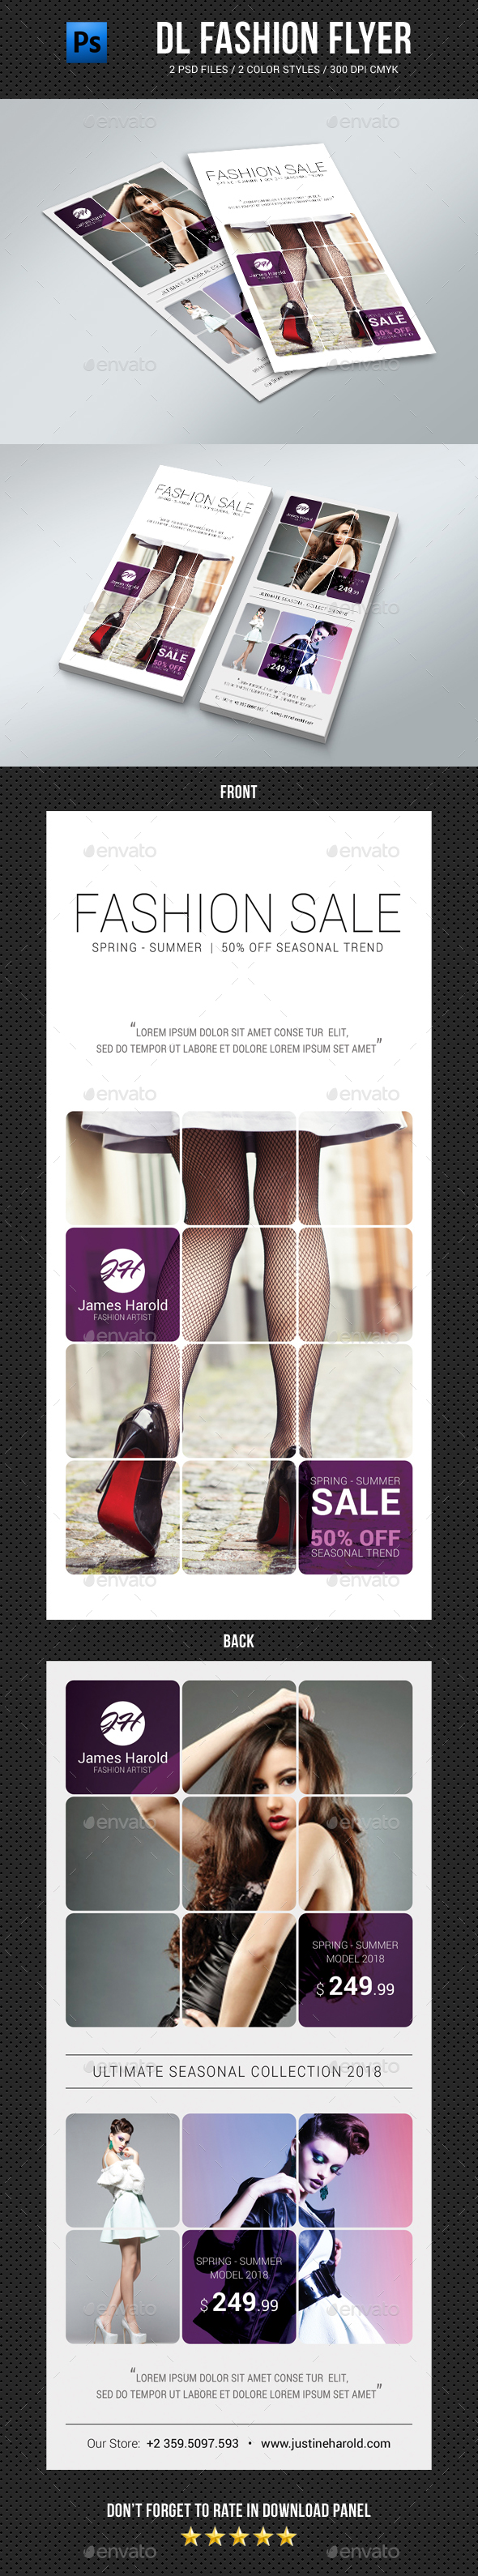 DL Fashion Flyer 04 - Commerce Flyers